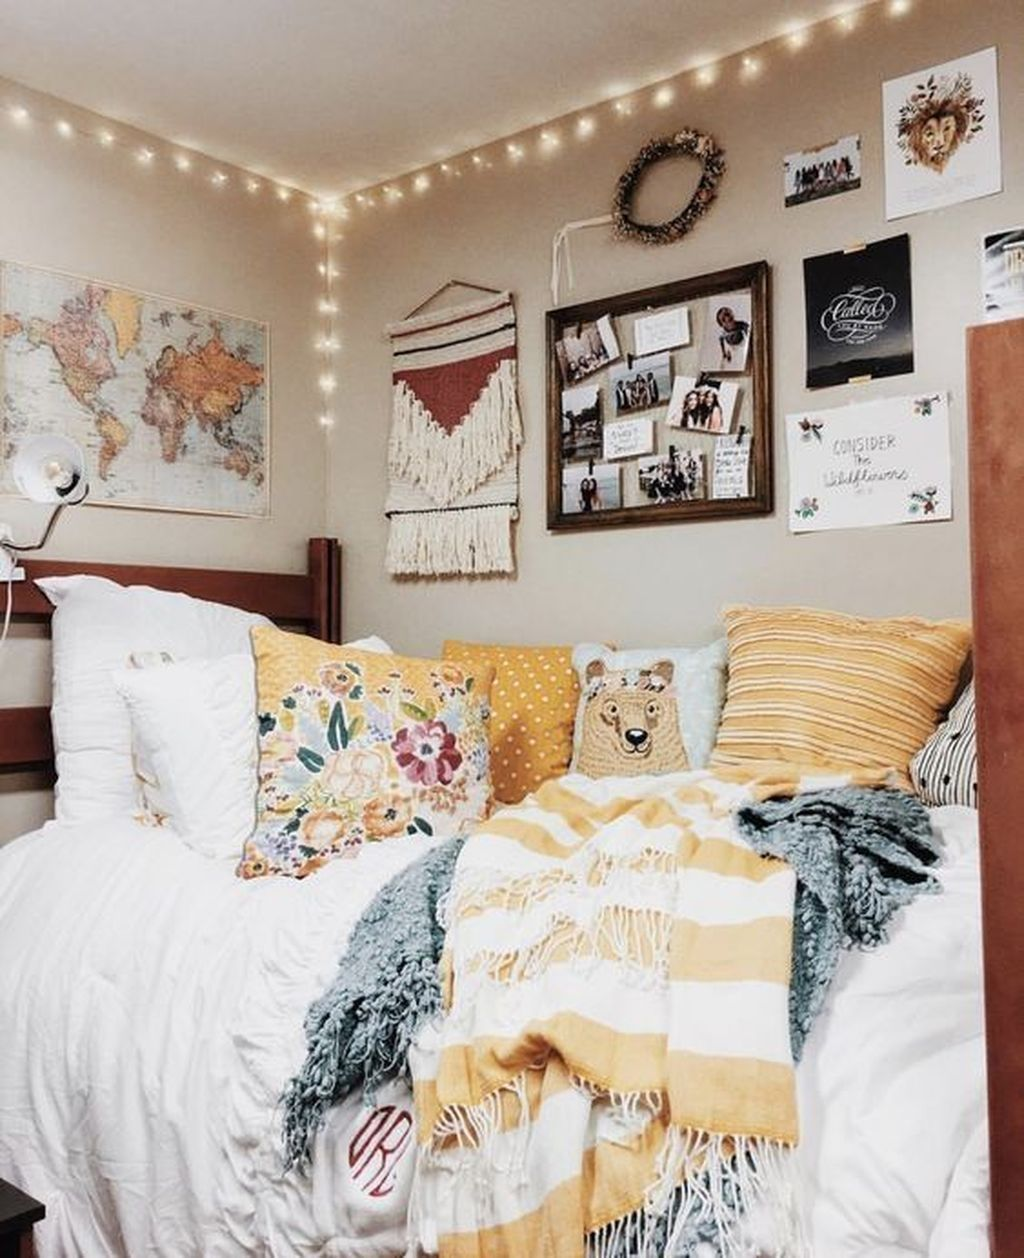 50 Extraordinary Dorm Room Ideas That Inspire You #collegedormroomideas